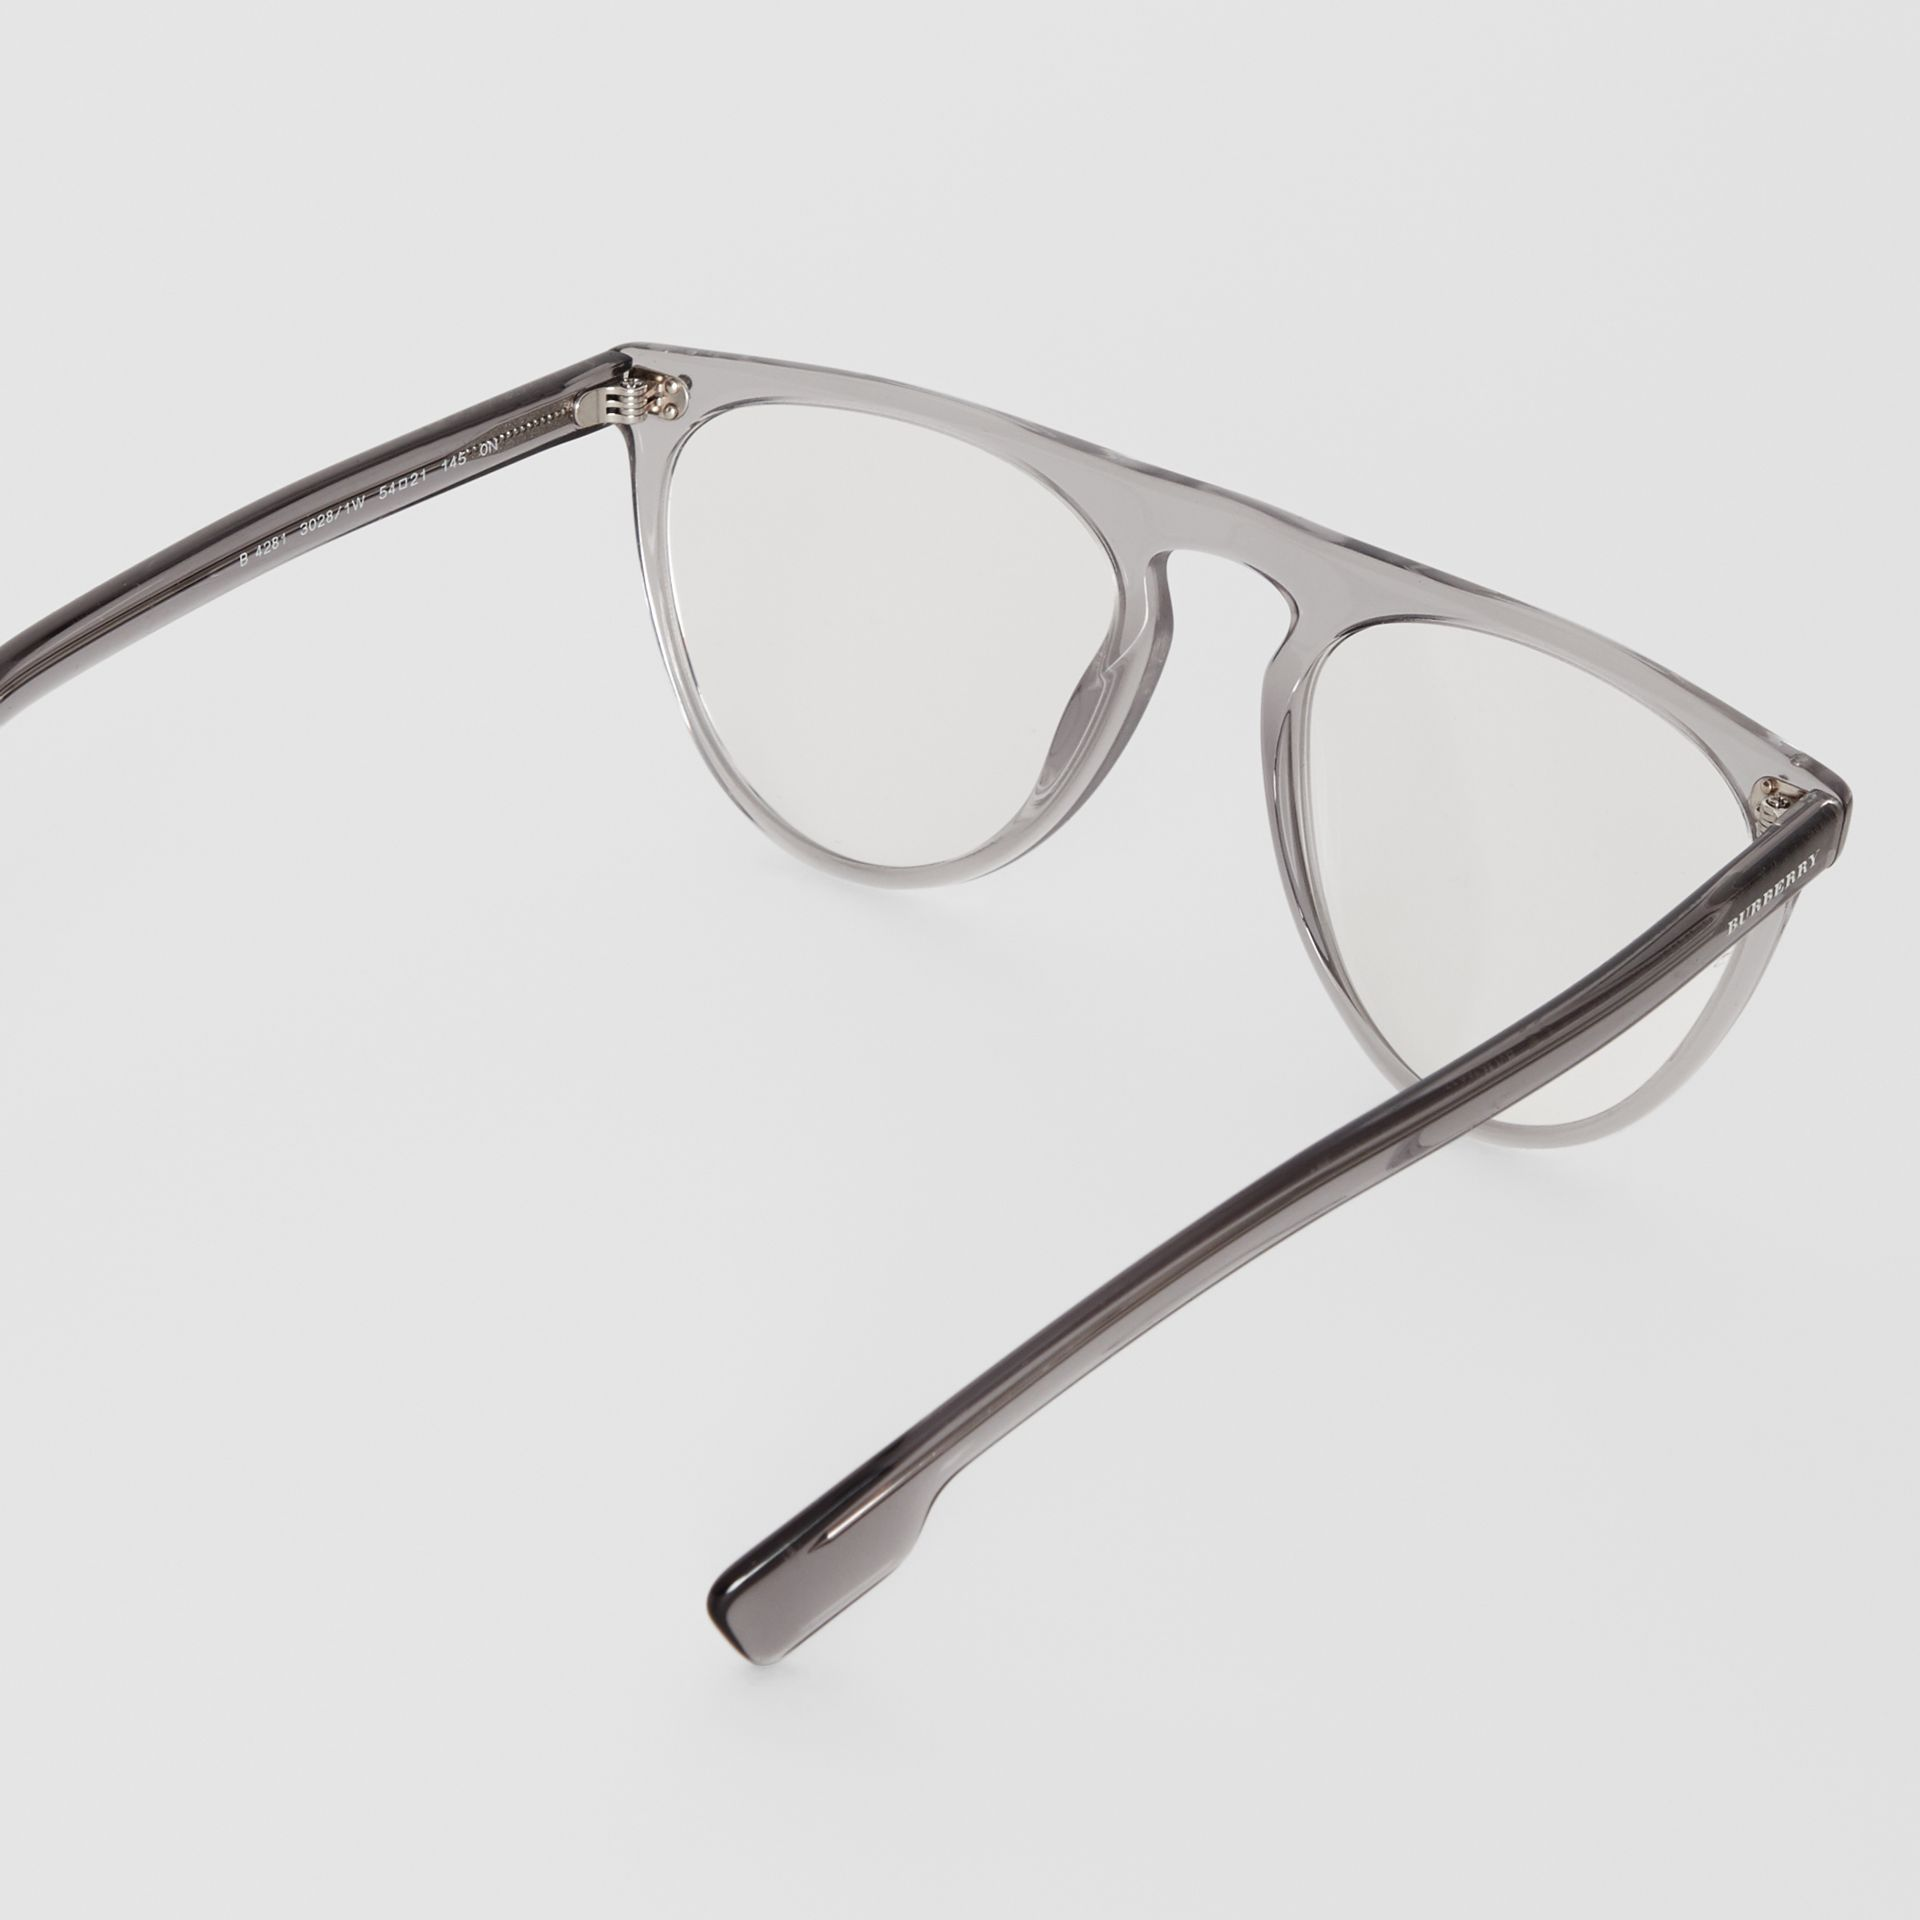 Keyhole D-shaped Optical Frames in Grey - Men | Burberry - gallery image 5